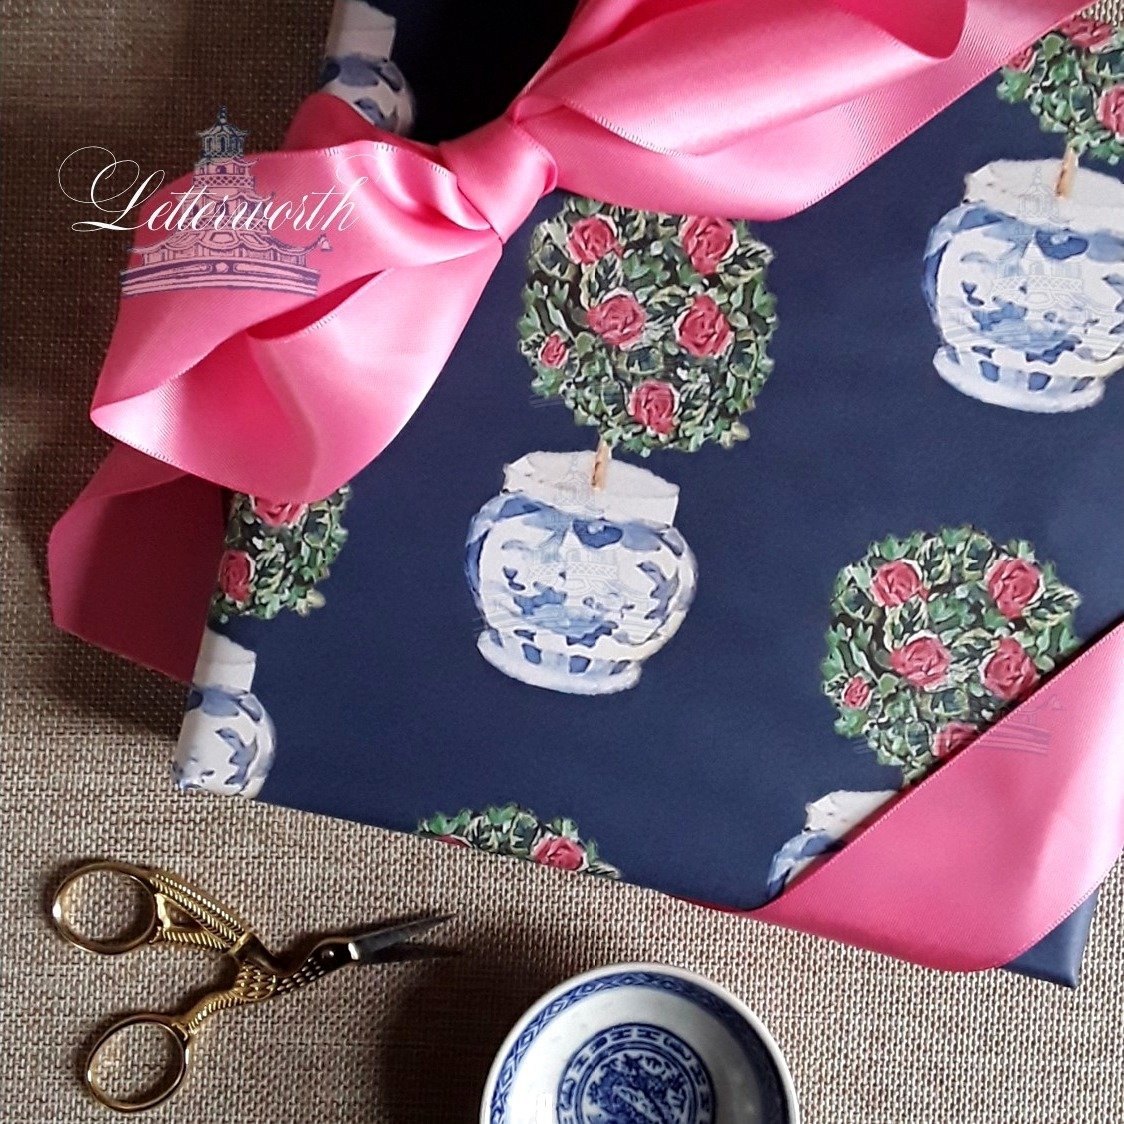 Rose Topiary on Navy Blue Gift Wrapping Paper by Letterworth